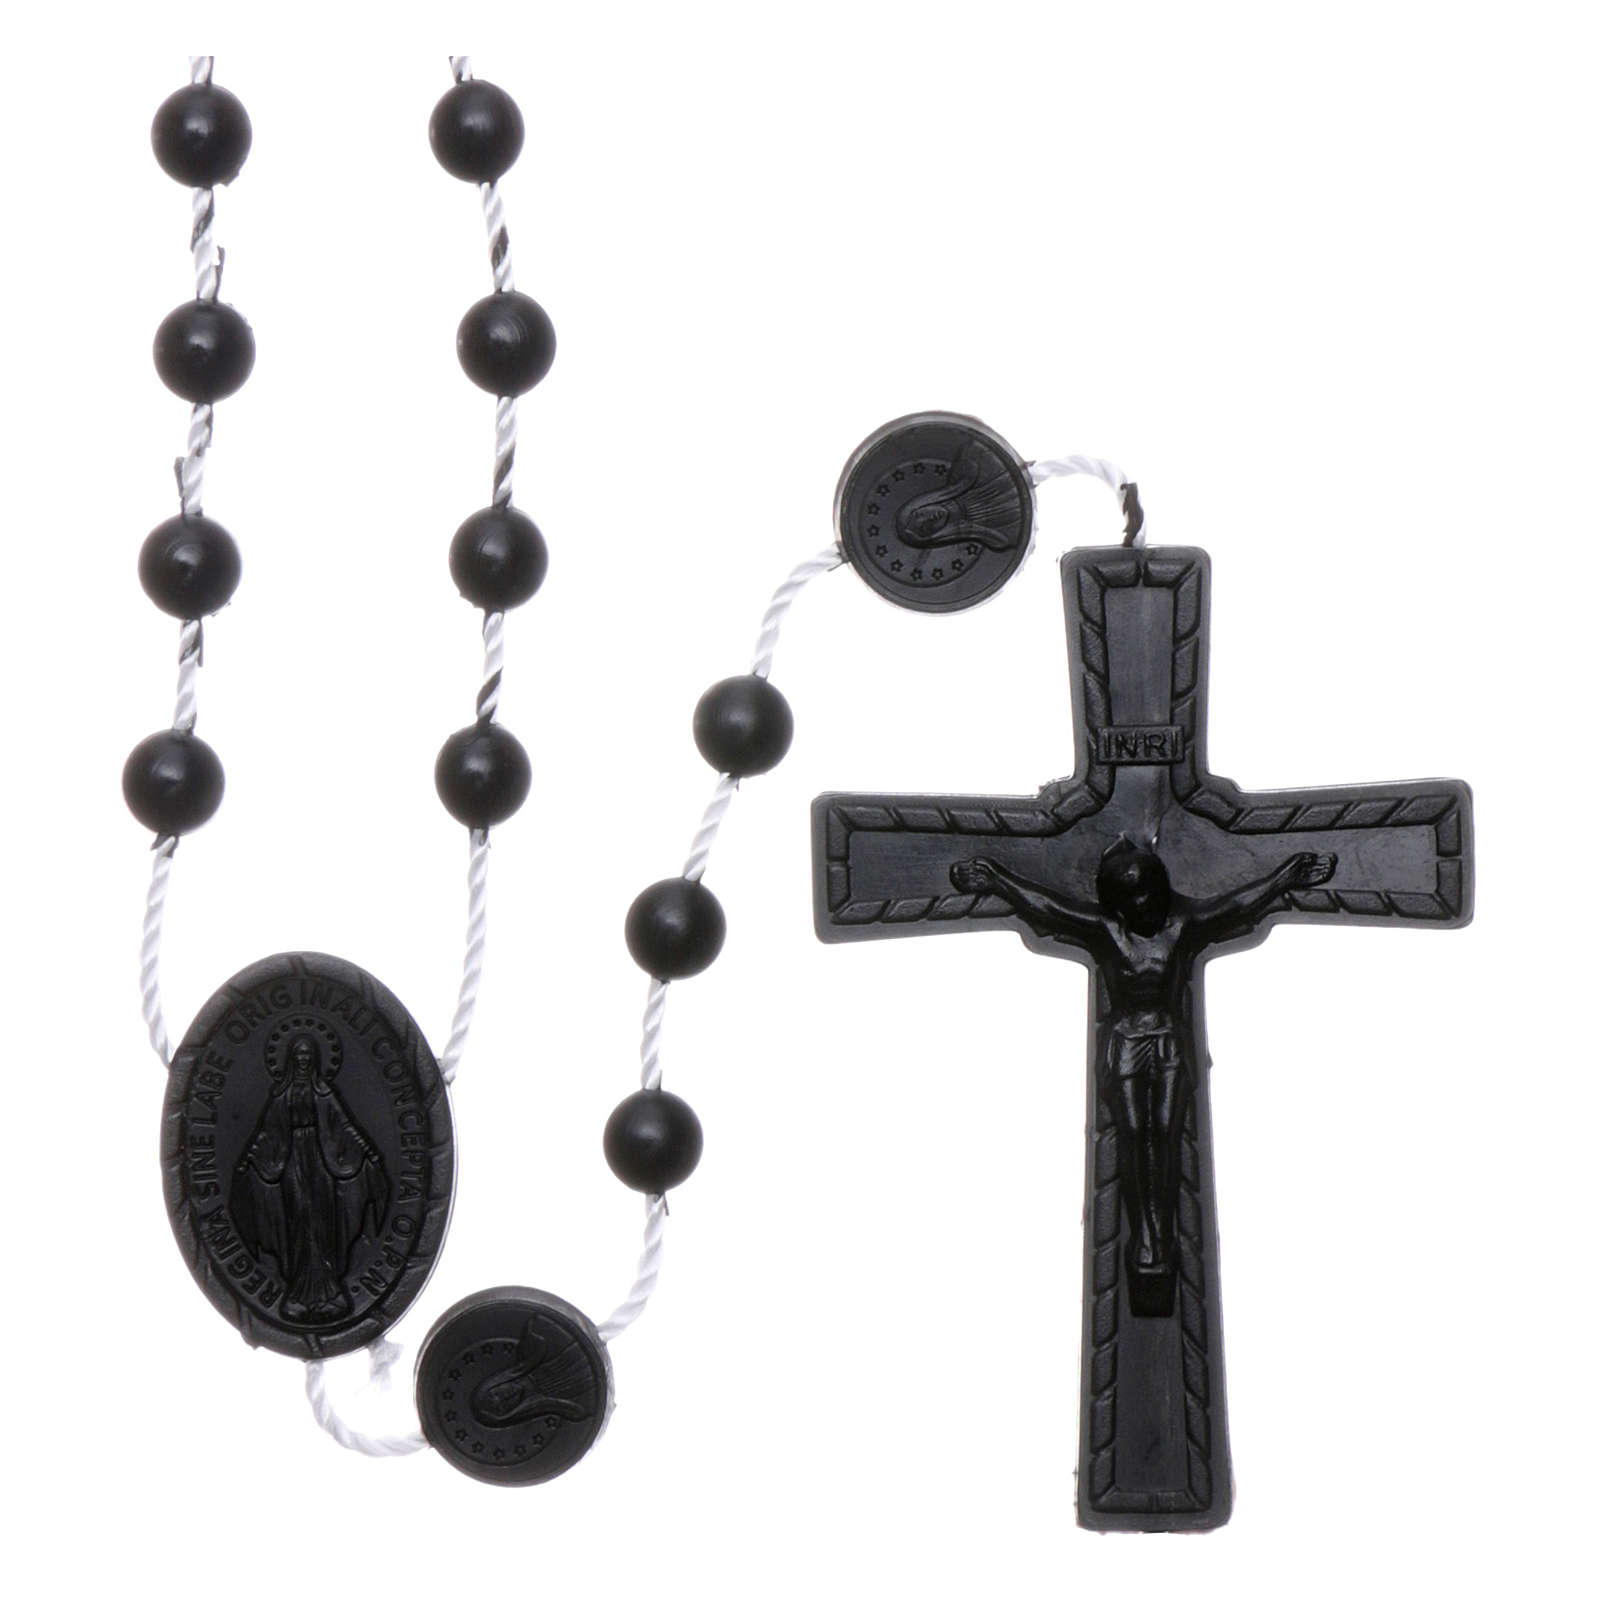 Our Lady of Miracles rosary in nylon black 4